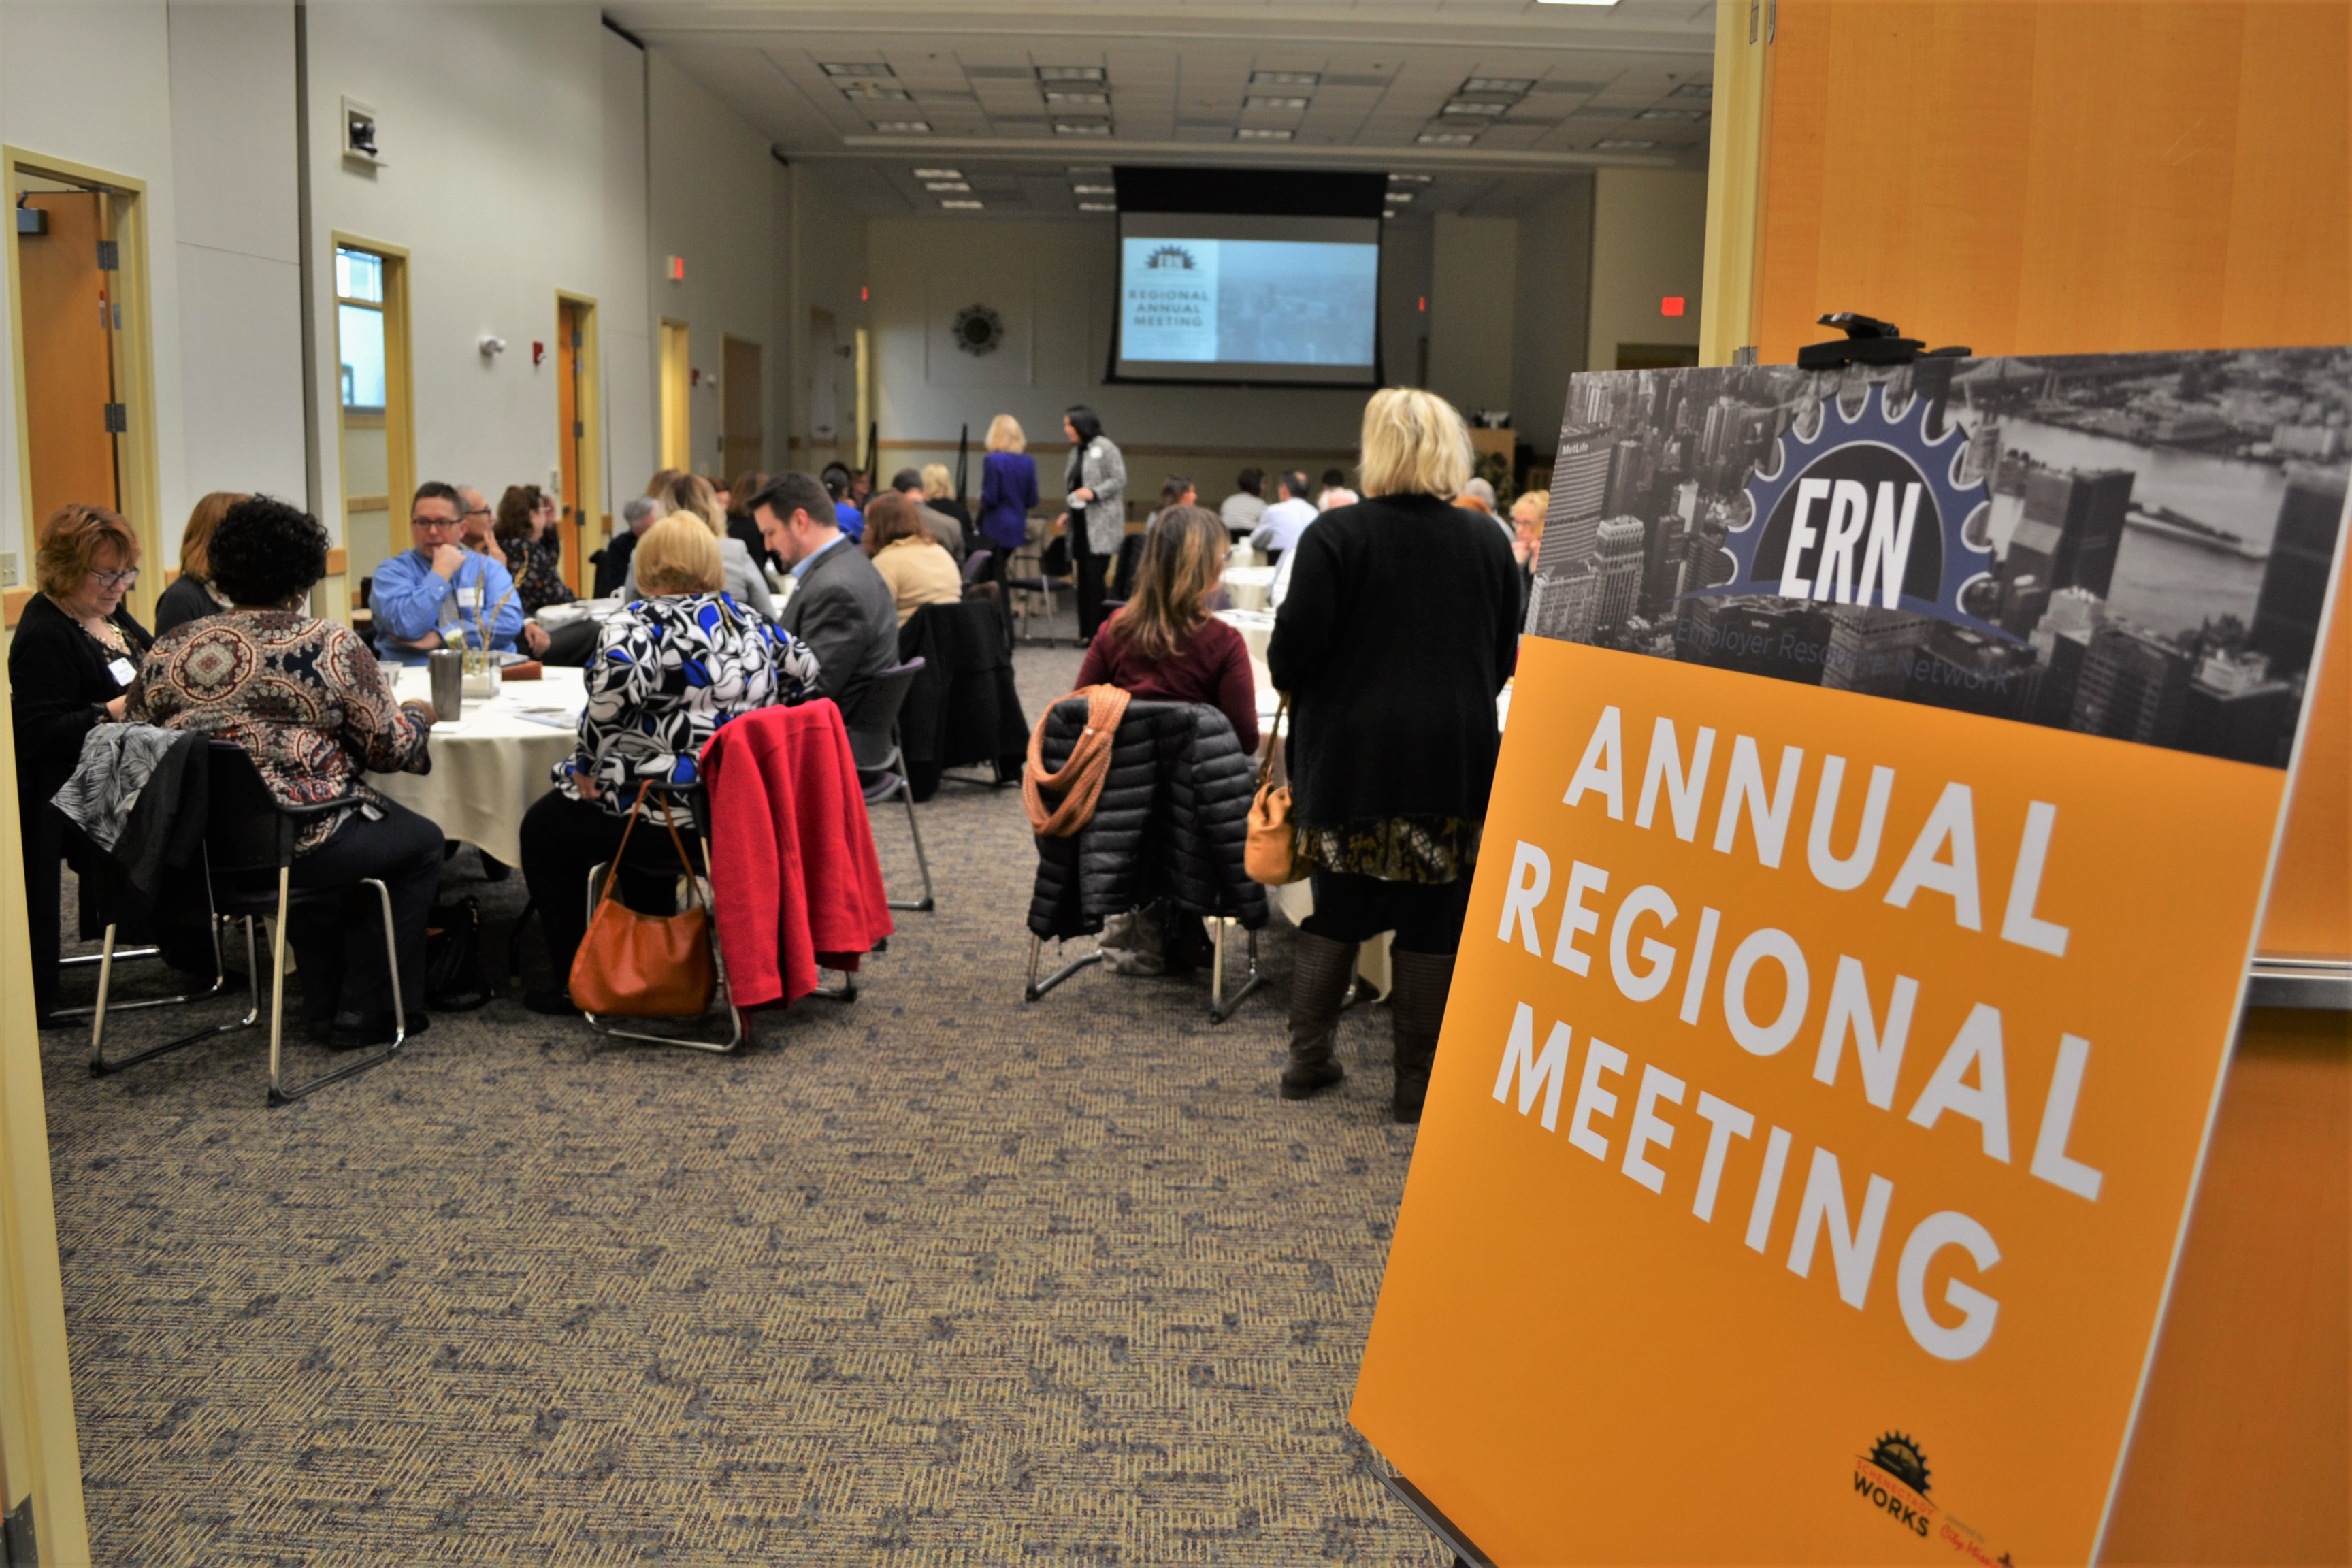 ERN Meeting Sign